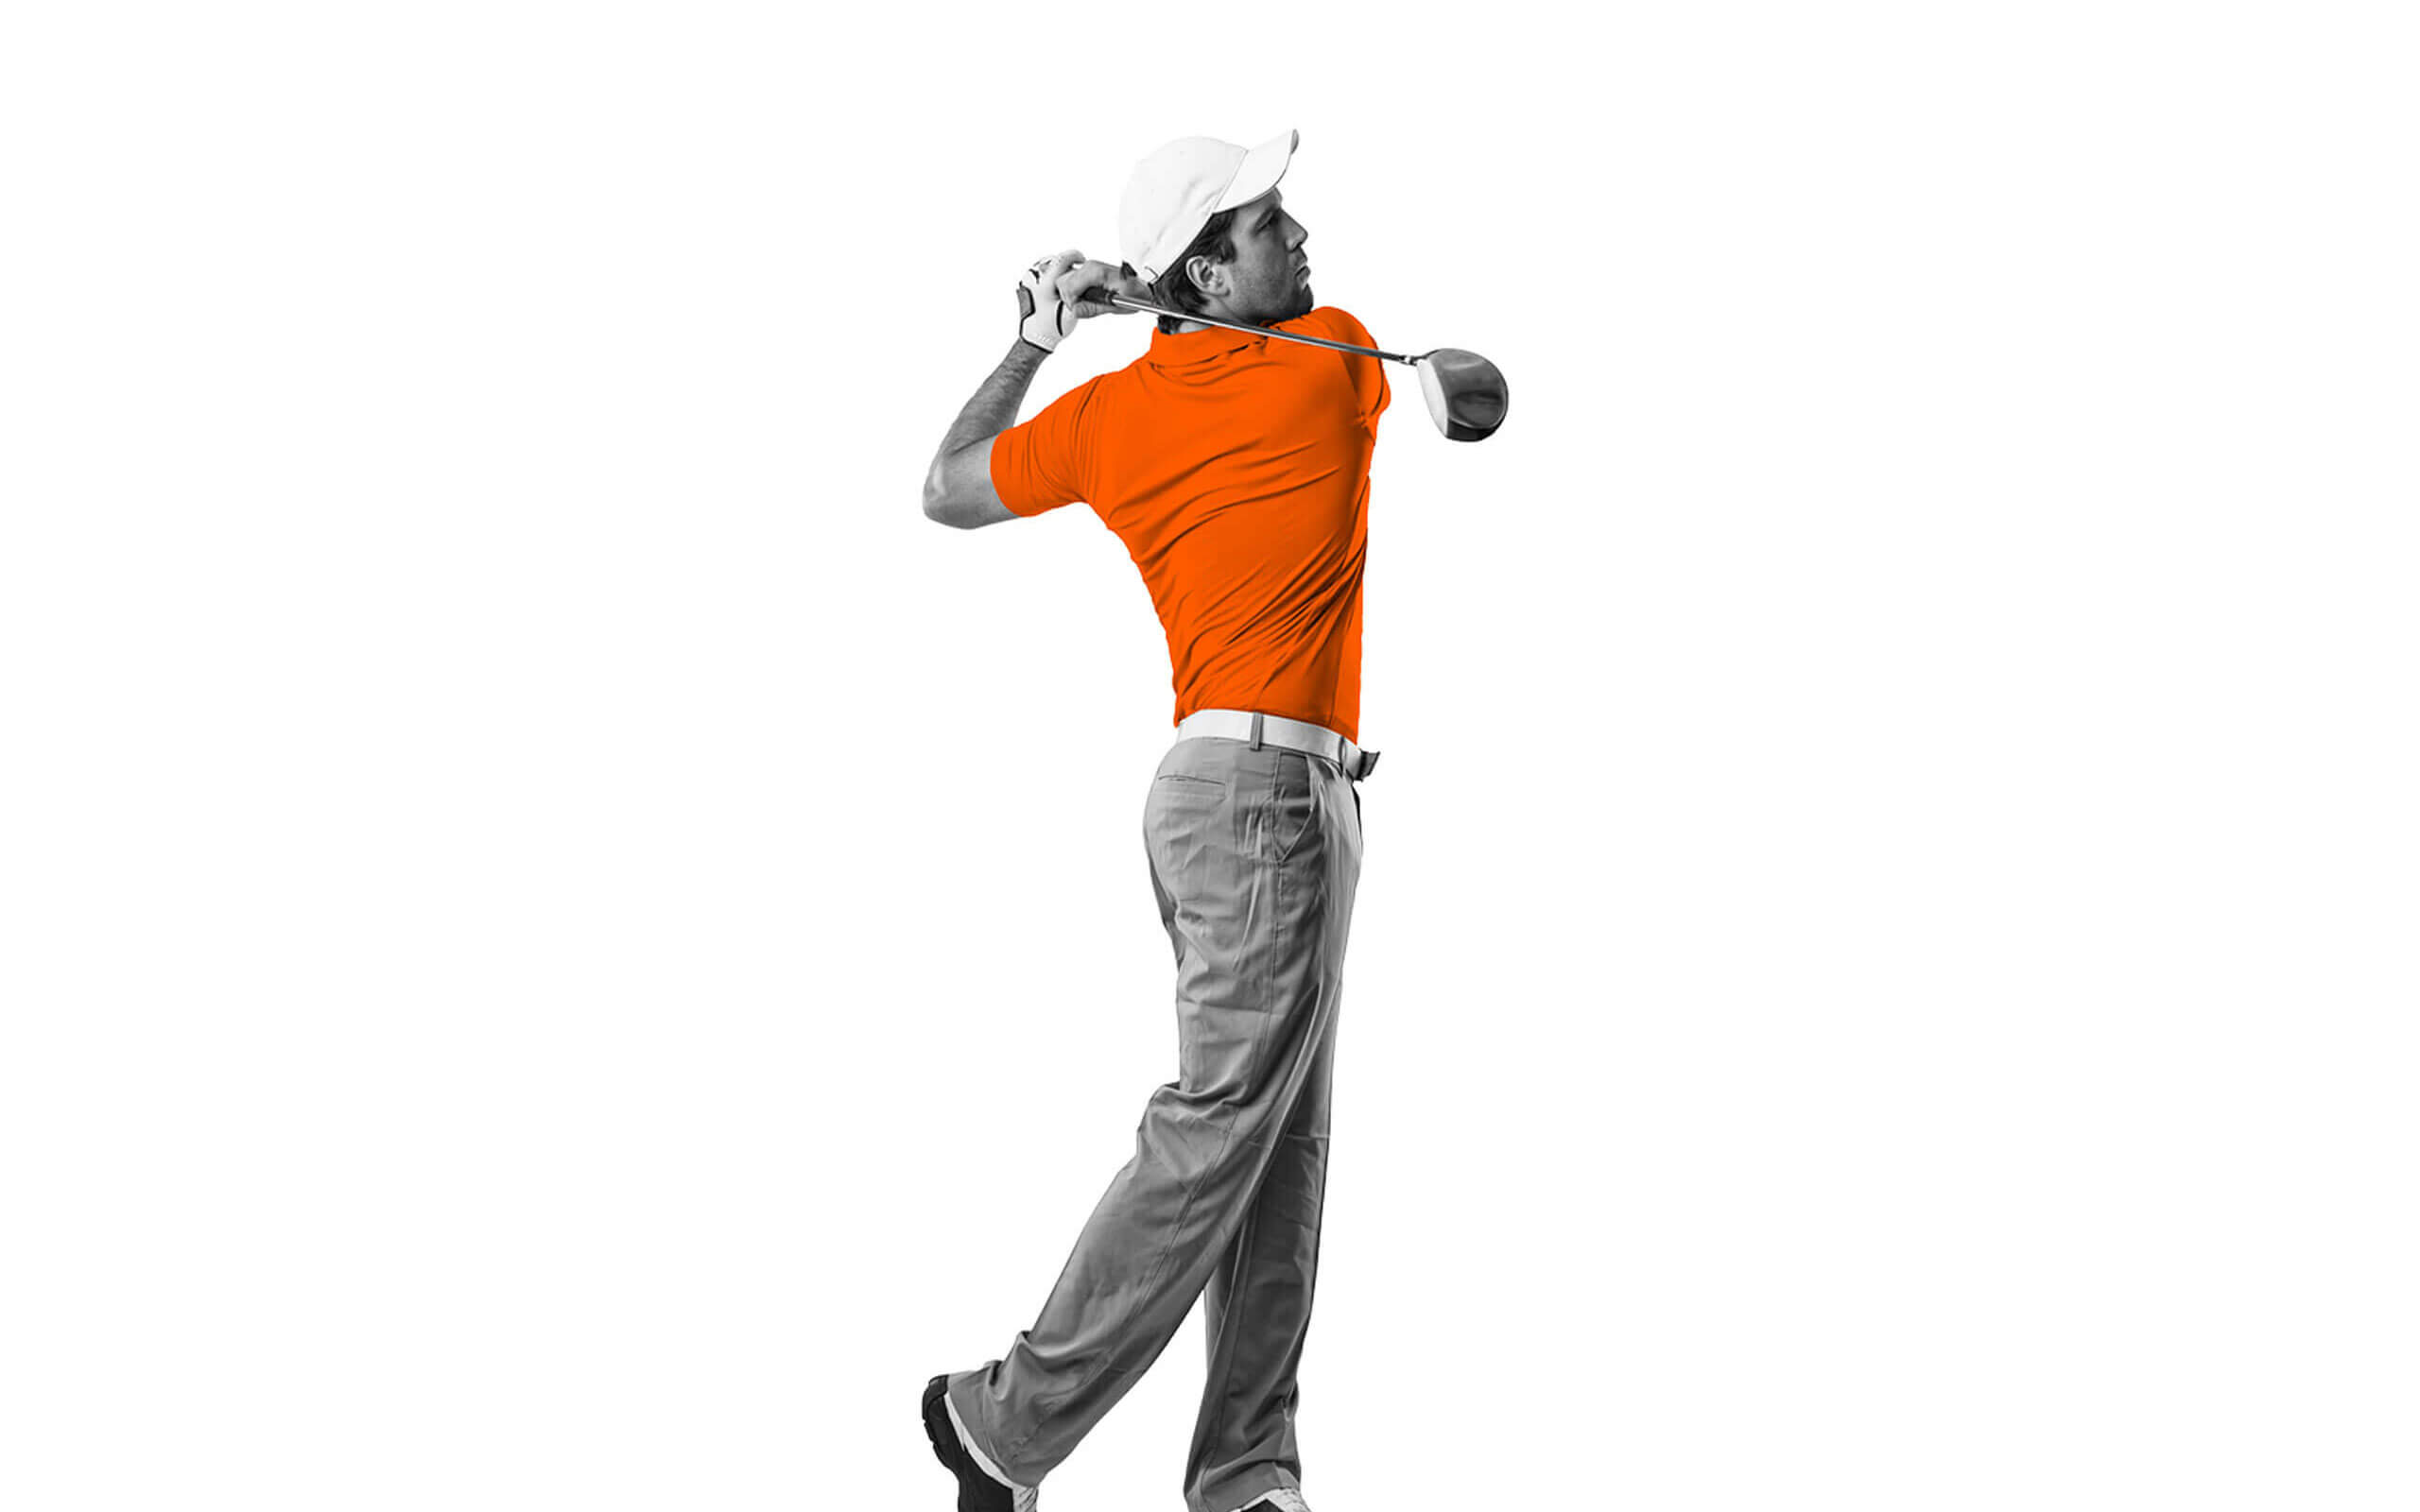 Grey and orange male golfer